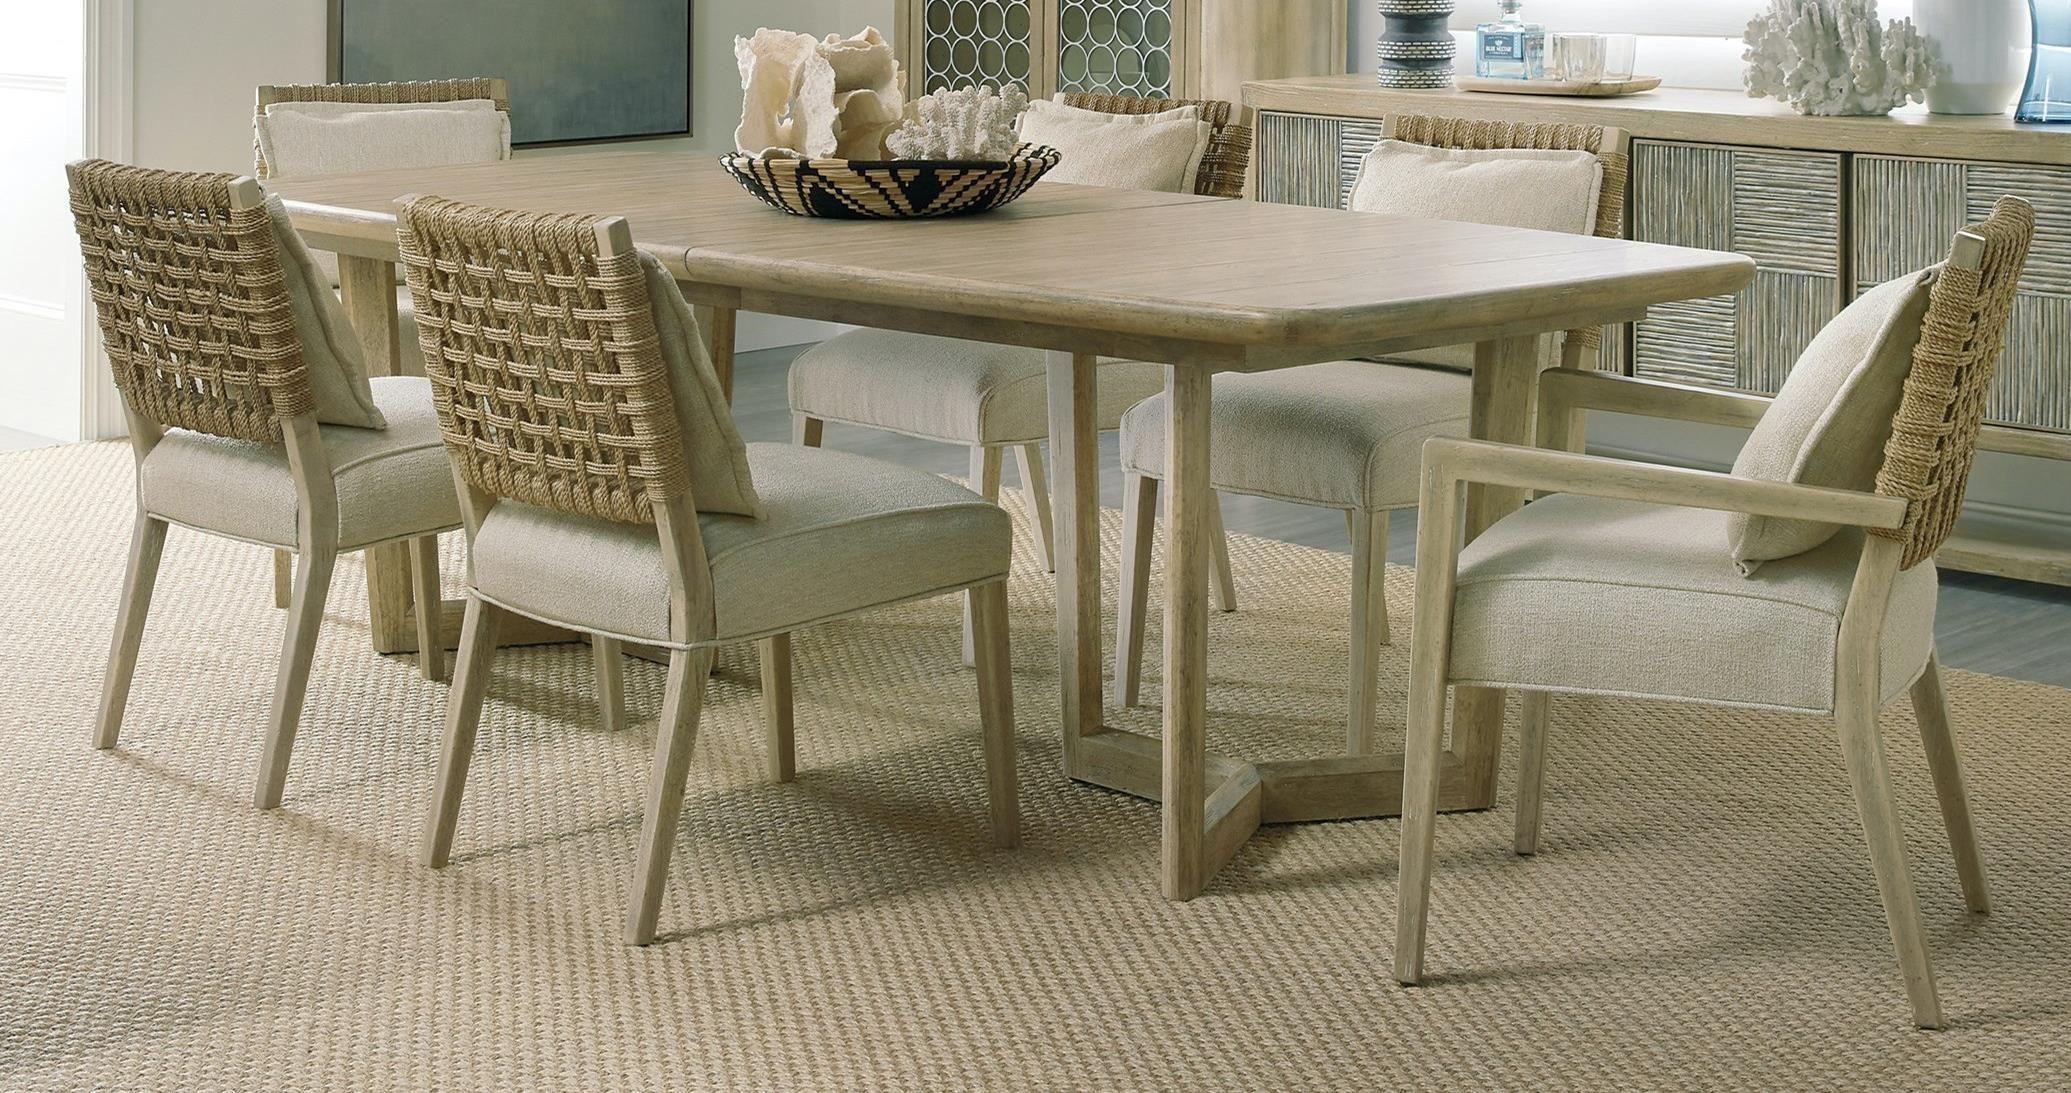 Surfrider 7-Piece Table and Chair Set by Hooker Furniture at Baer's Furniture